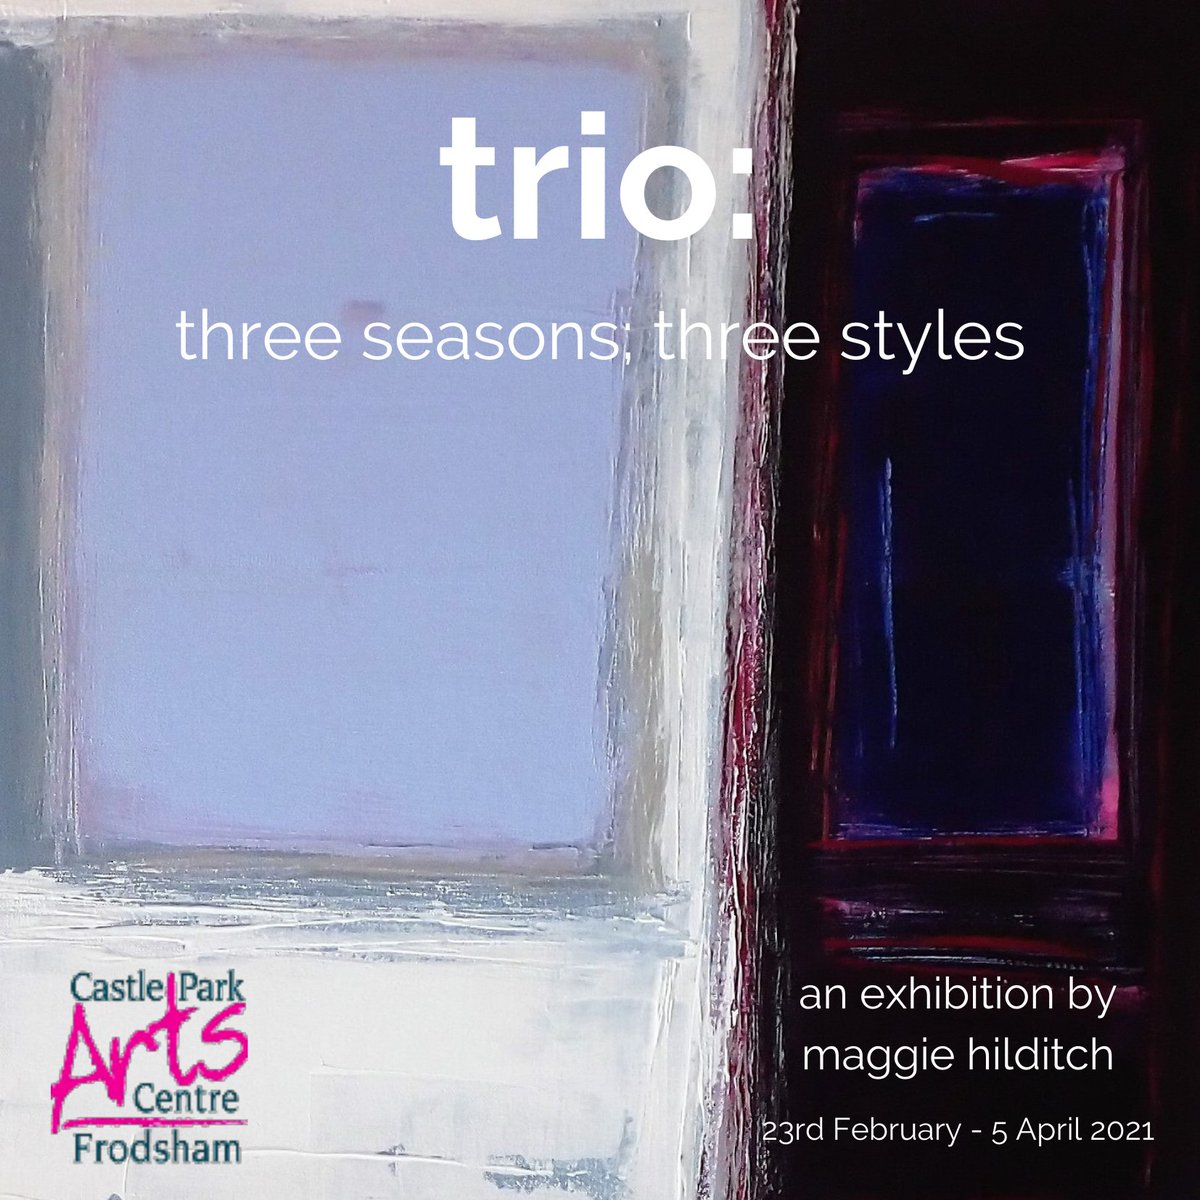 Trio: three seasons, three styles. Going ahead with this #exhibition and hoping Lockdoown will end soon! If not a selection of my #art will be on their website! #painting #drawing